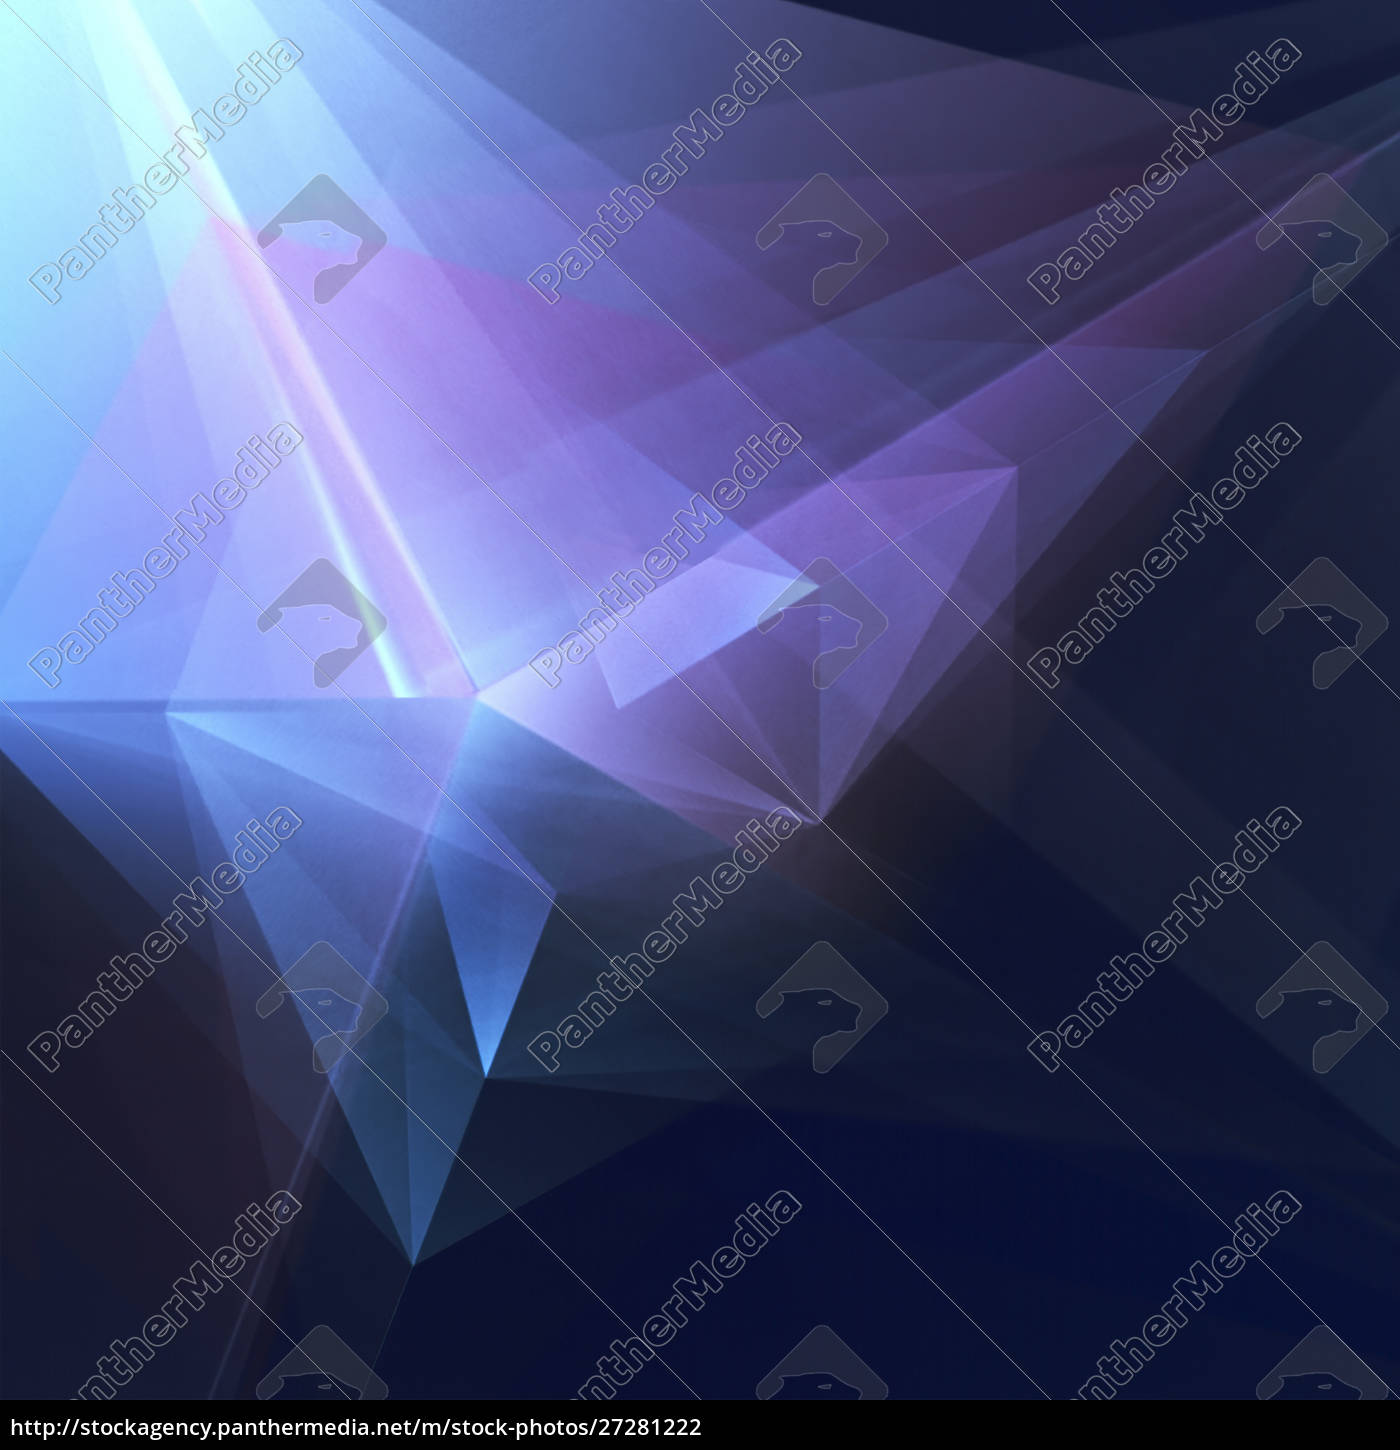 abstract, geometric, blue, -, purple, background - 27281222